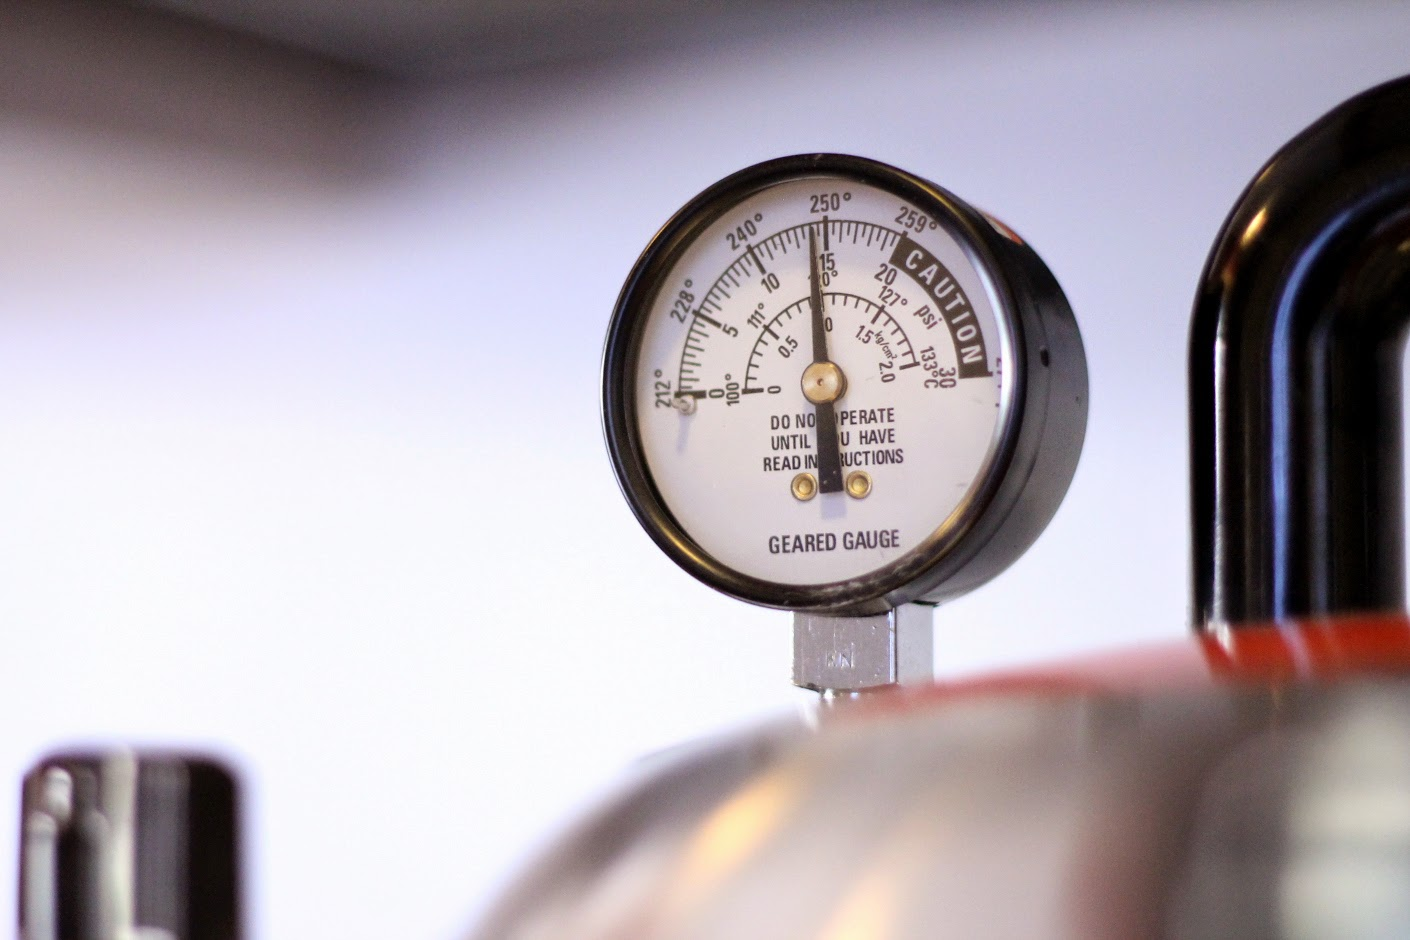 The pressure gauge, nearly to 15 PSI.